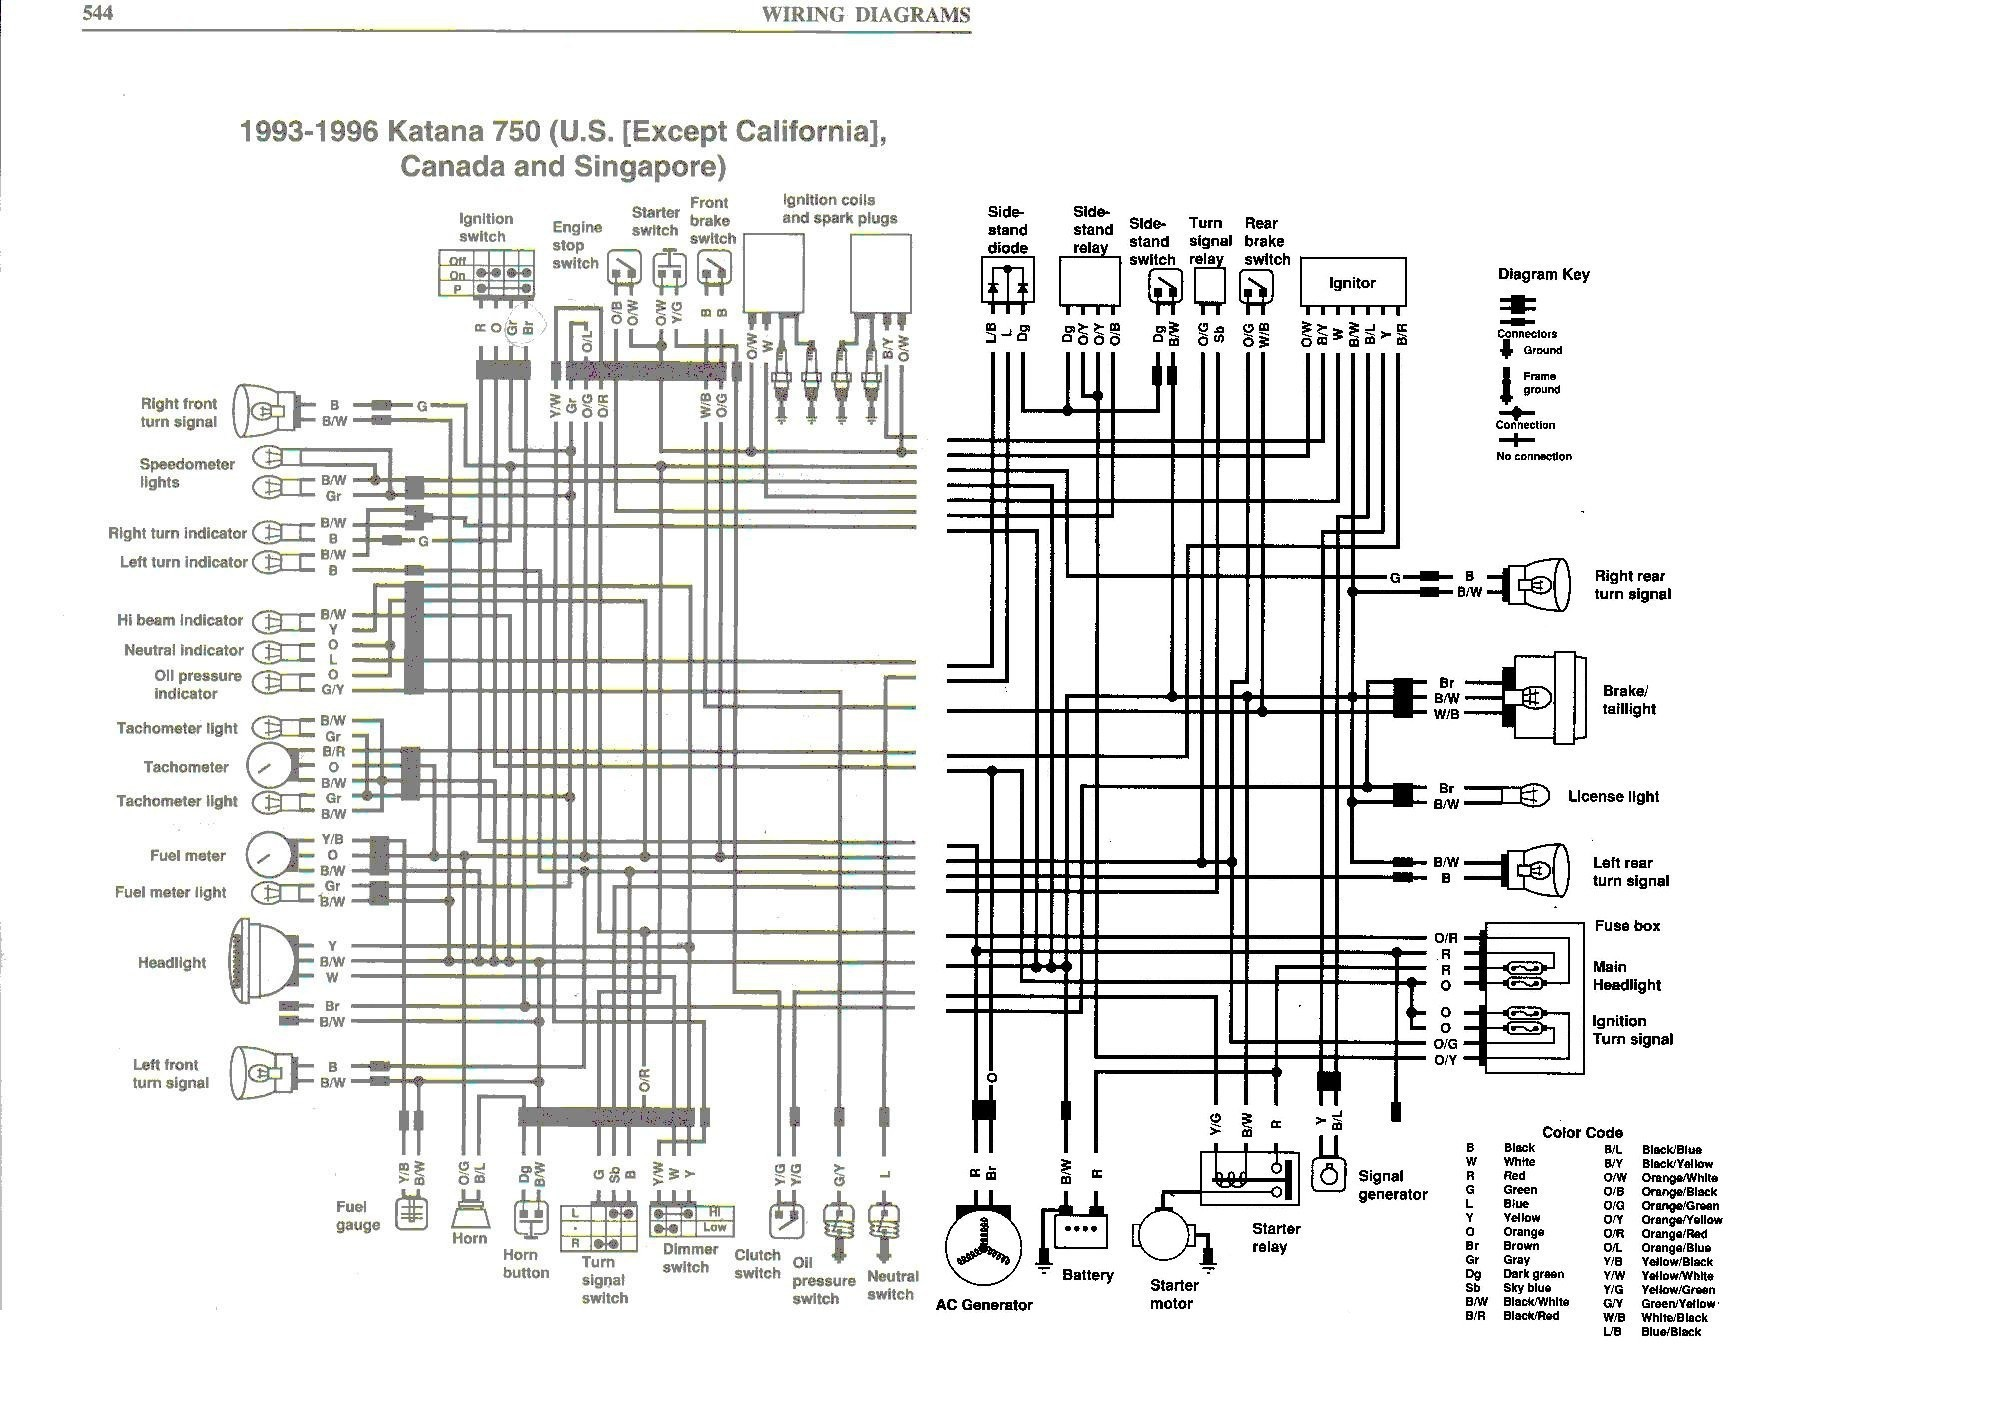 Suzuki Bandit Wiring Diagram My Wiring Diagram